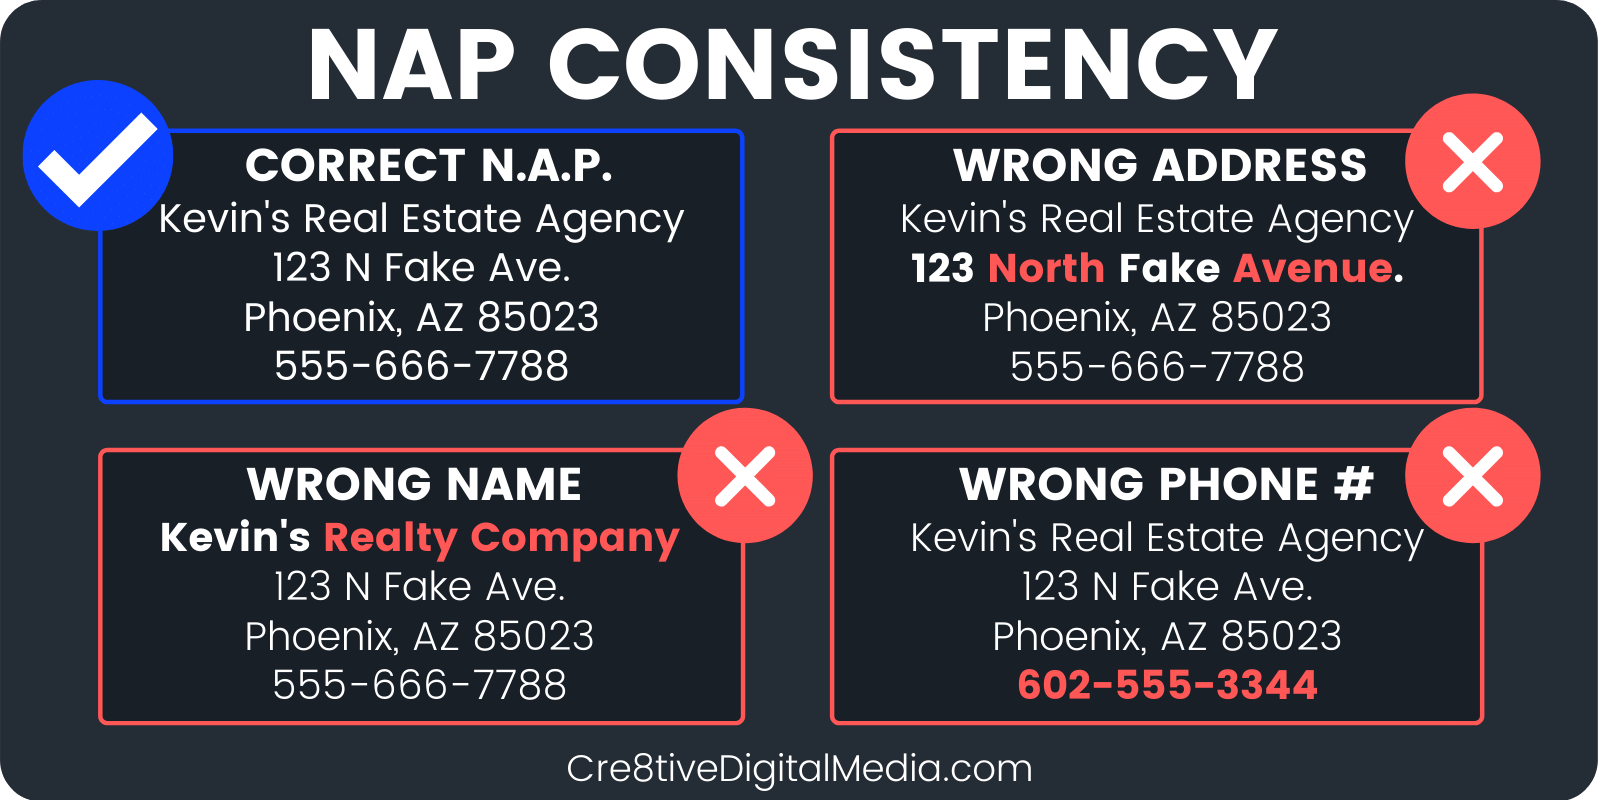 NAP Consistency Affects Local SEO Rankings